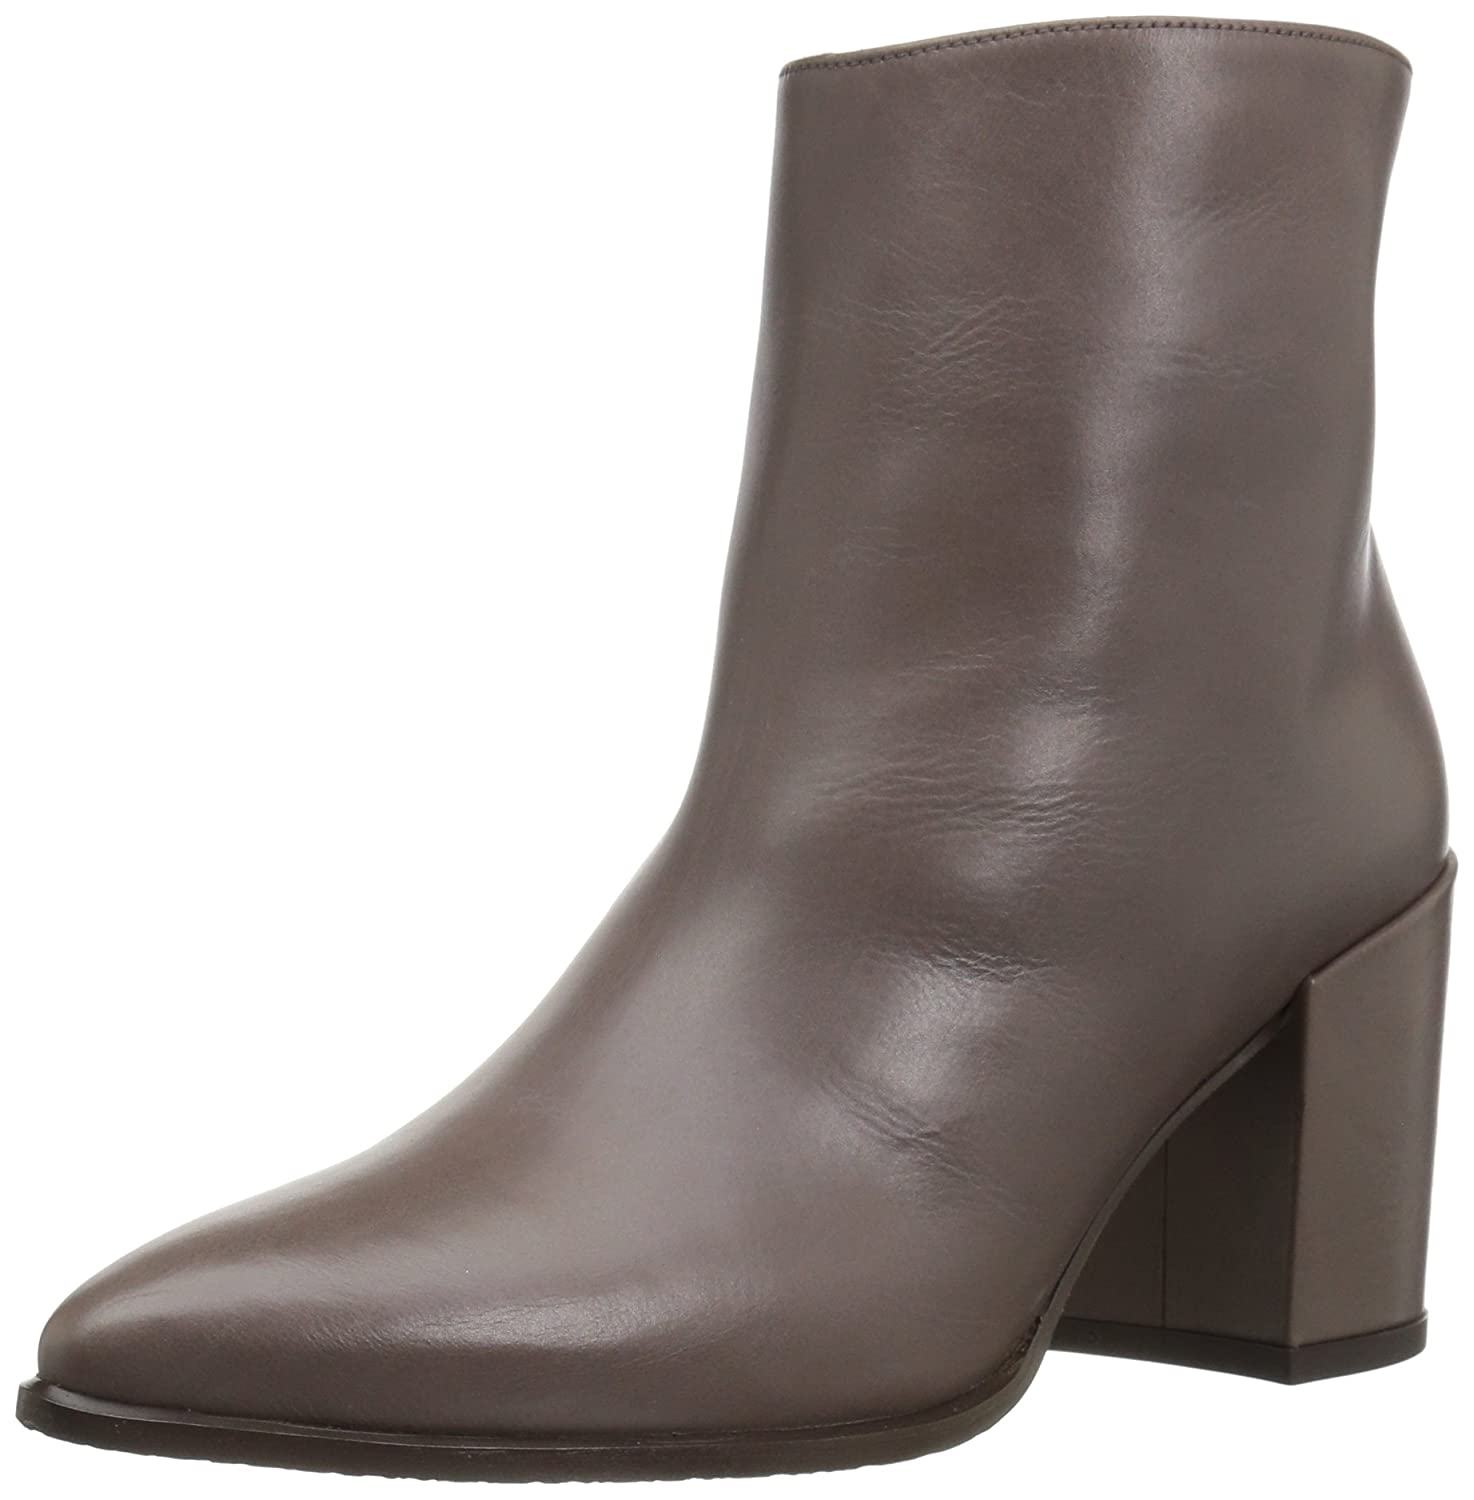 Stuart Weitzman Women's Trendy Ankle Boot B06XP998JV 11.5 B(M) US|Taupe